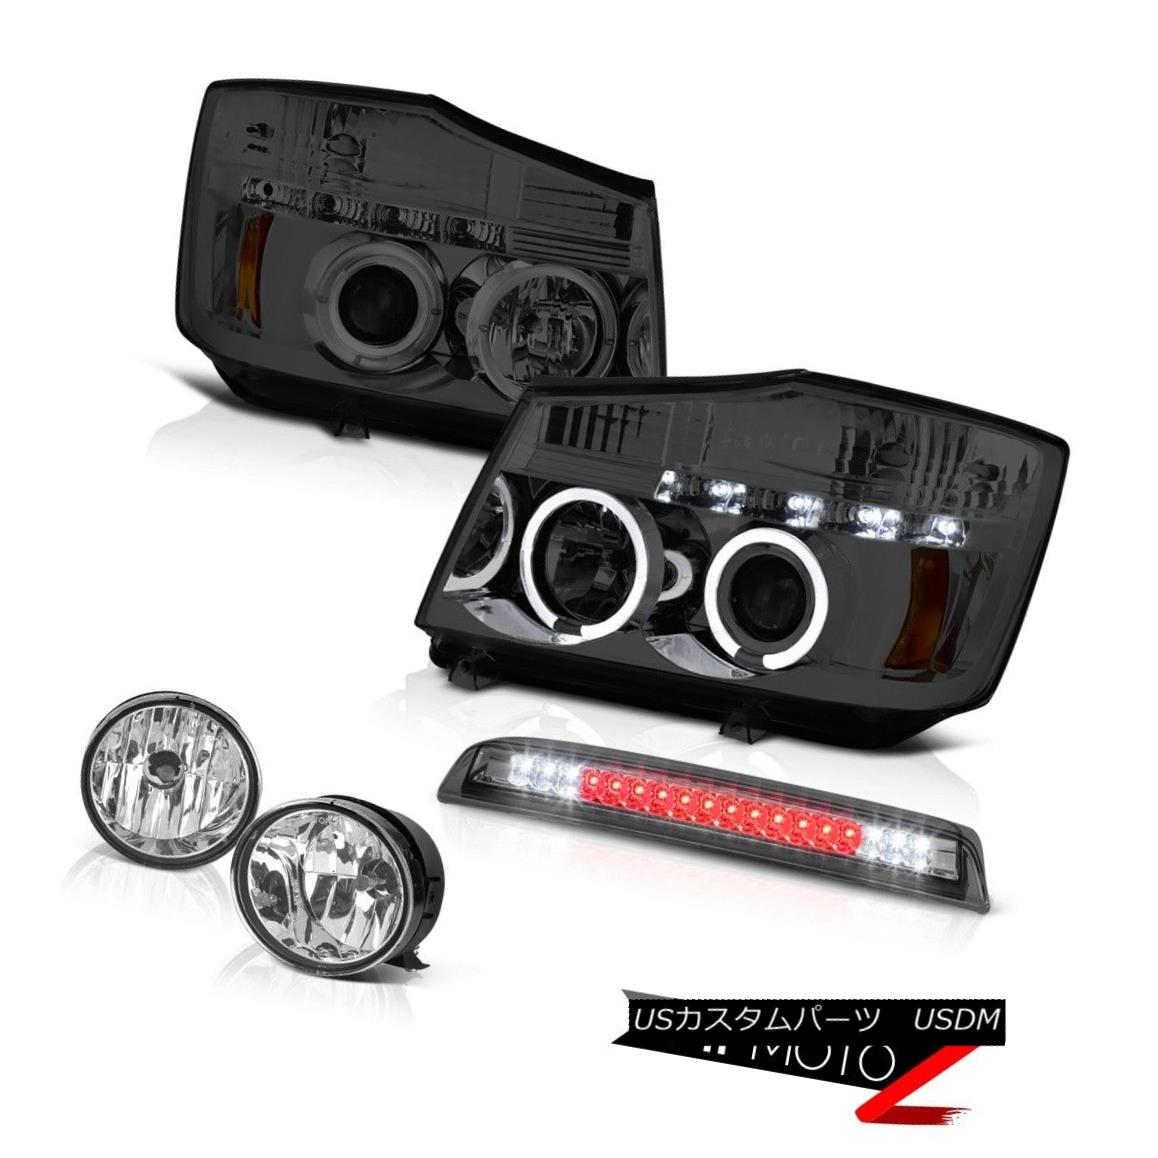 ヘッドライト For 04-15 Titan SL Tinted Headlight Halo DRL L.E.D Foglamp Smoke Cargo 3rd Brake 04-15タイタンSLの着色ヘッドライトHalo DRL L.E.D Foglamp Smoke Cargo 3rd Brake